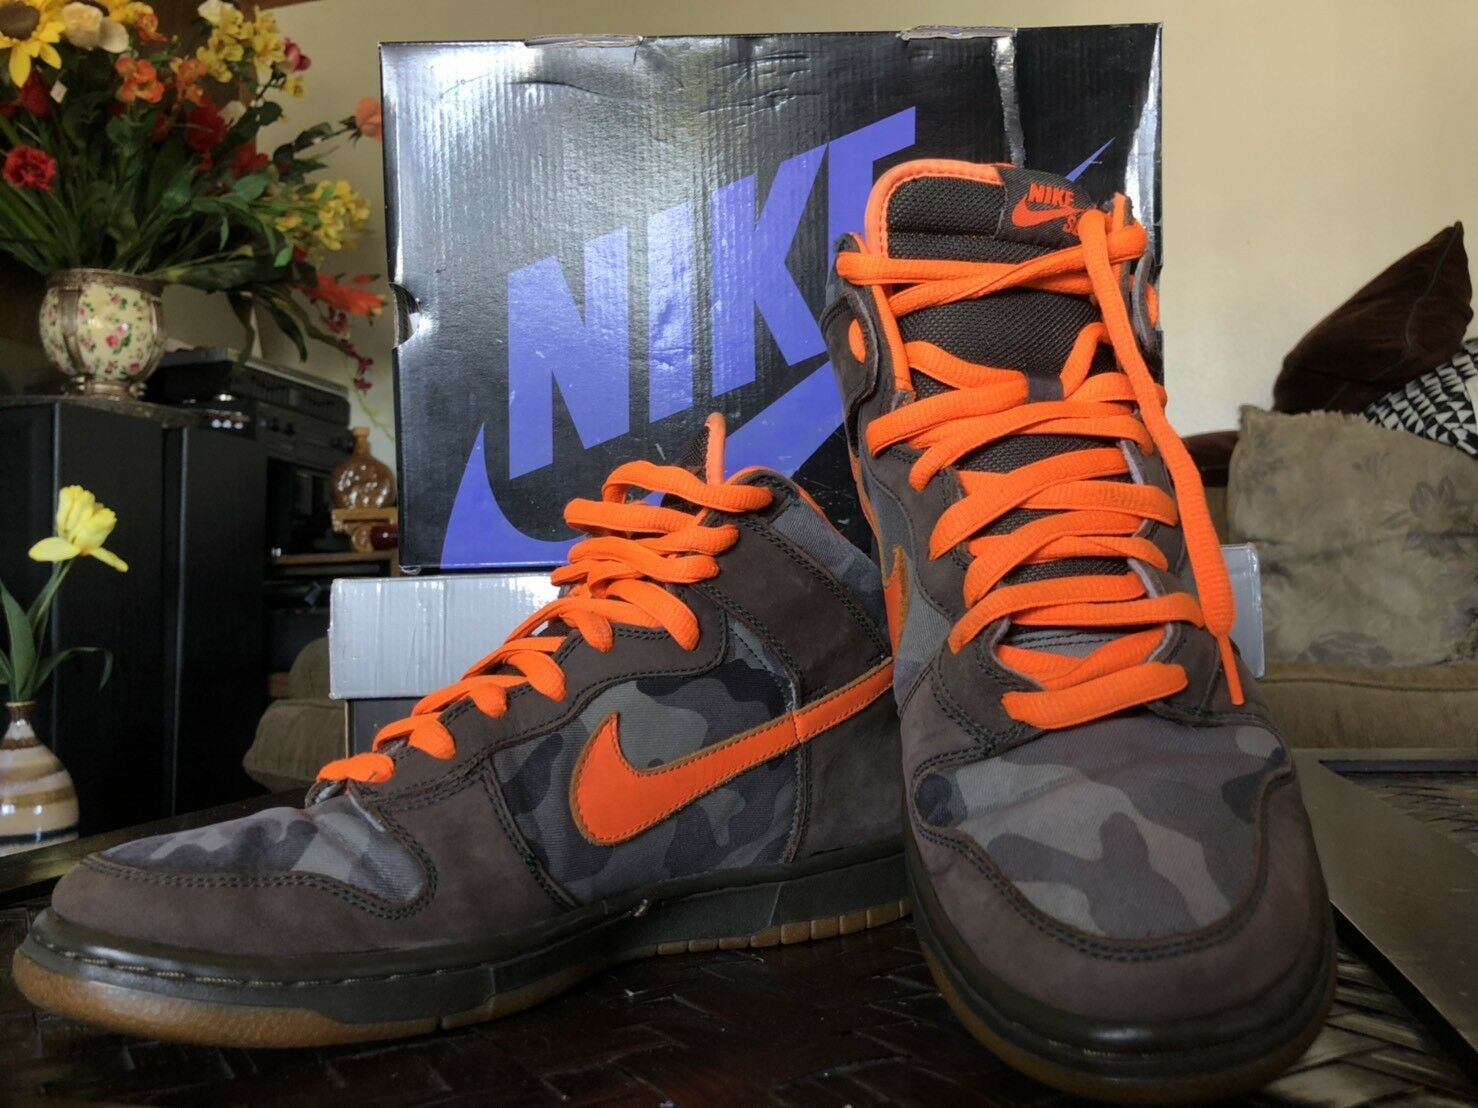 NIKE DUNK HIGH PRO SB BRIAN ANDERSON 10 CAMO OLIVE GREEN orange 2006 305050-281